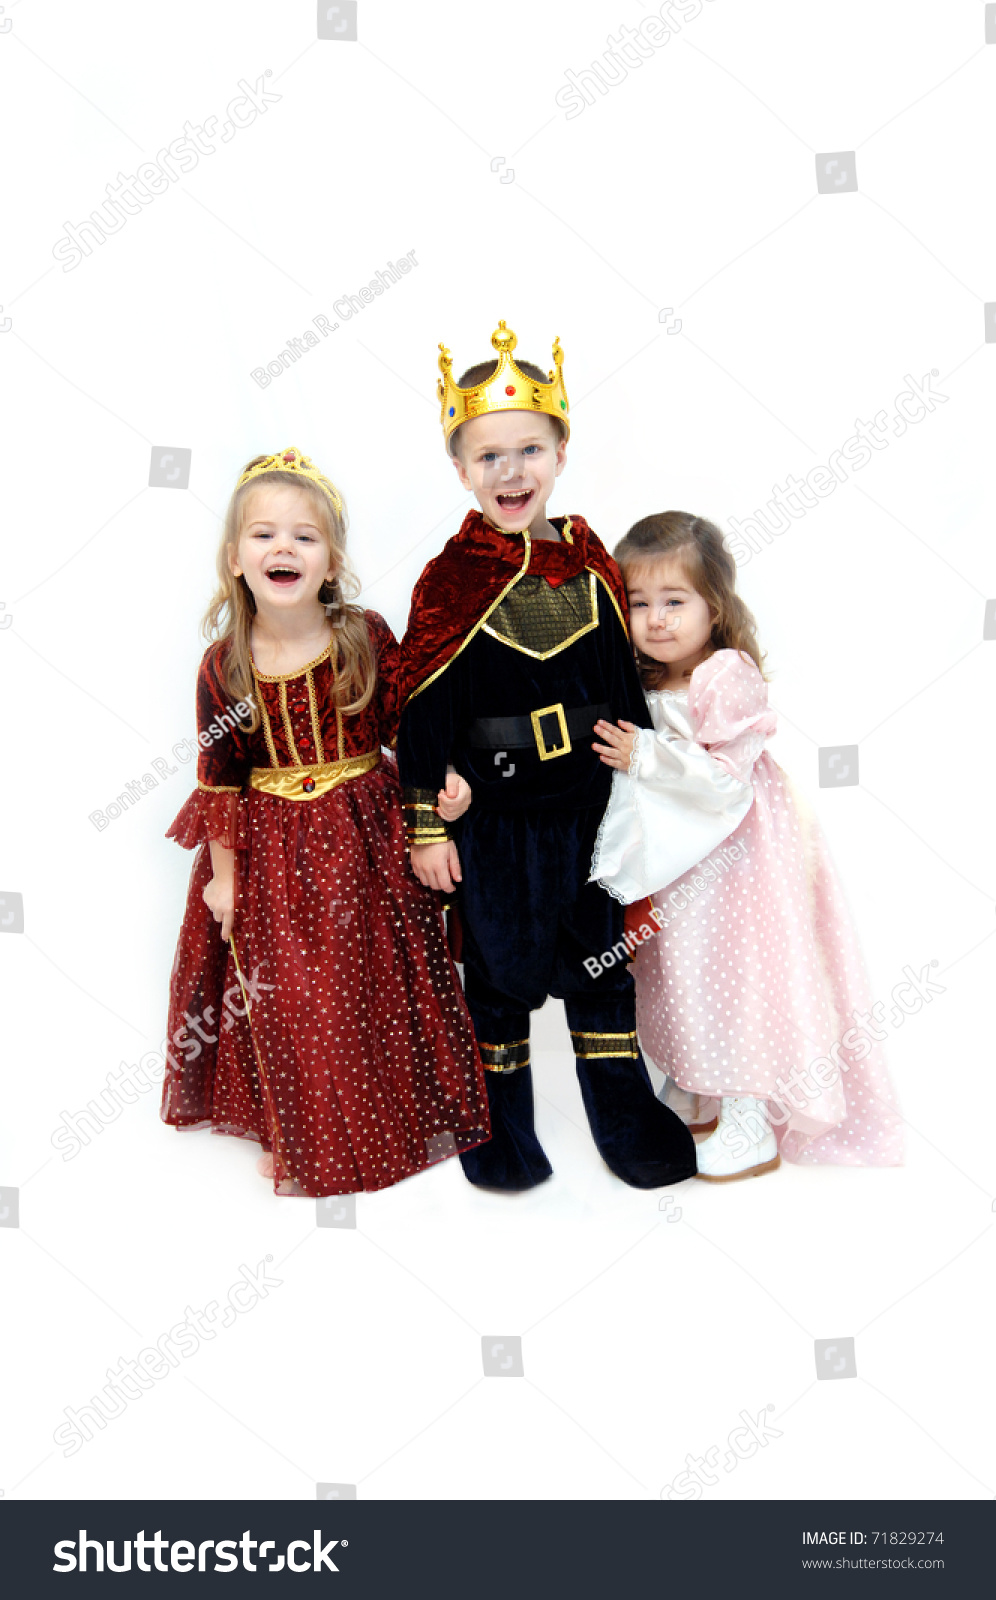 Dress up princess - Three Children Dressup As King Queen And Princess For Halloween Little Princess Is Leaning